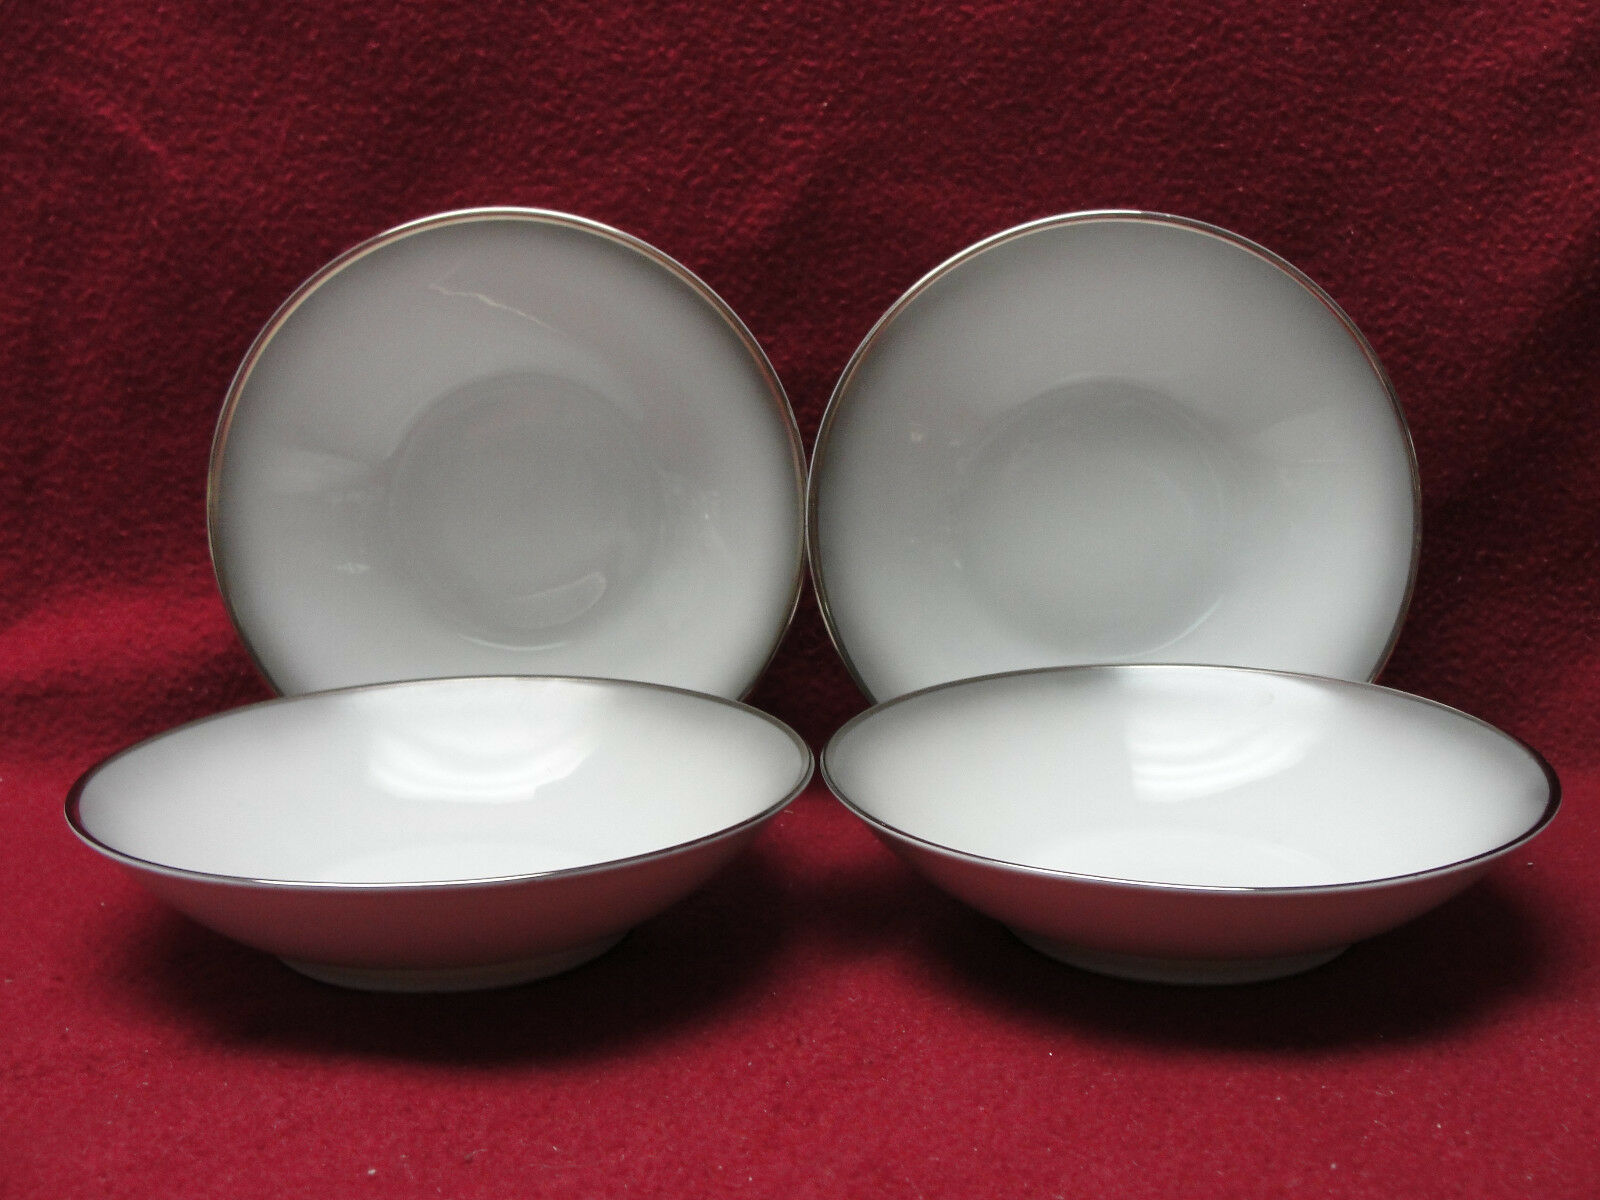 Primary image for Four (4) ROSENTHAL CHINA - ELEGANCE Pattern (Bettina ) - FRUIT / DESSERT BOWLS